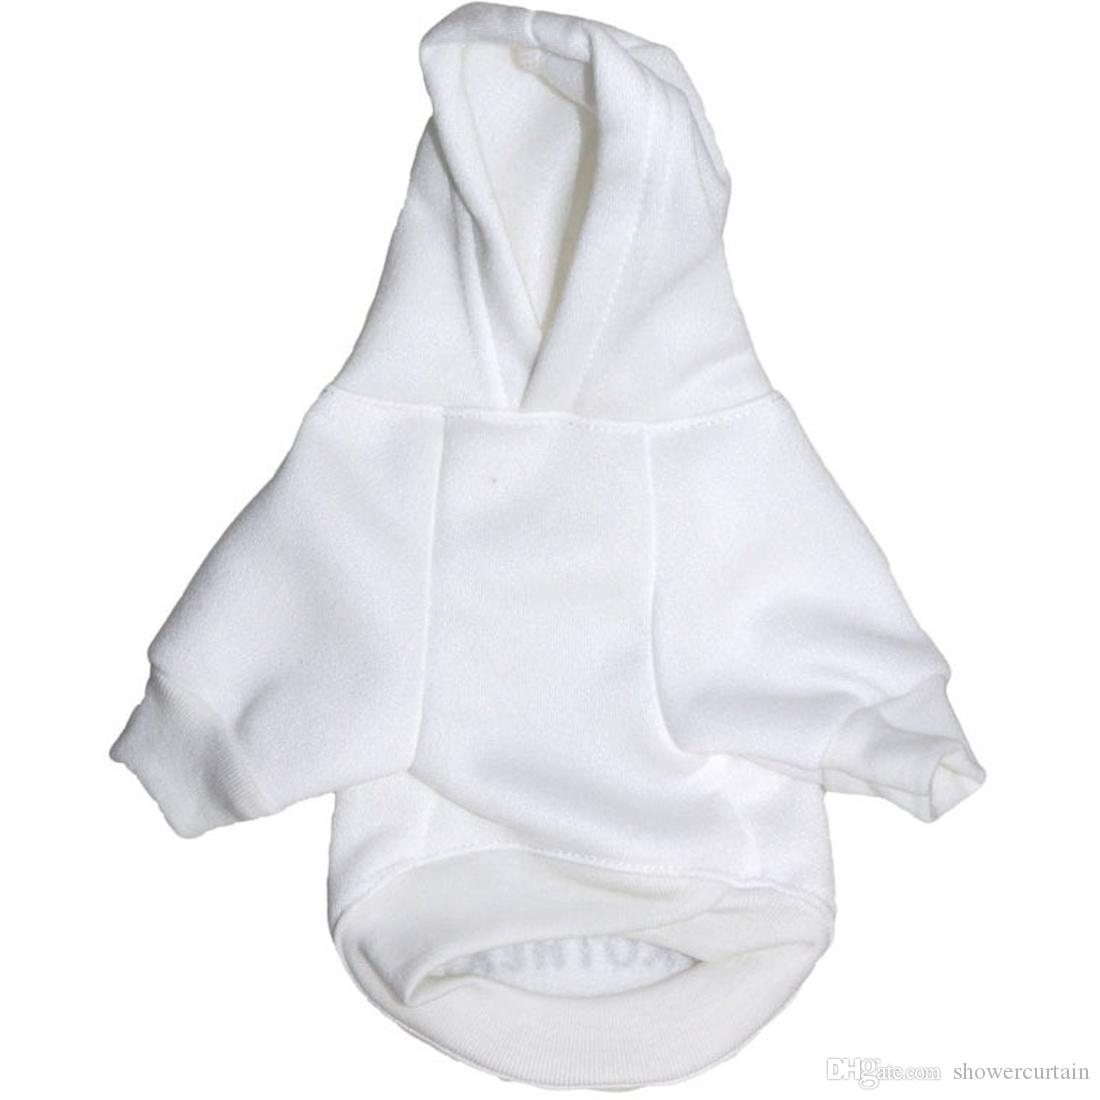 Creative Design Big Brother Puppy Dog Warm Hoodies White Pet Coat Sweater Apparel for Sale Fast